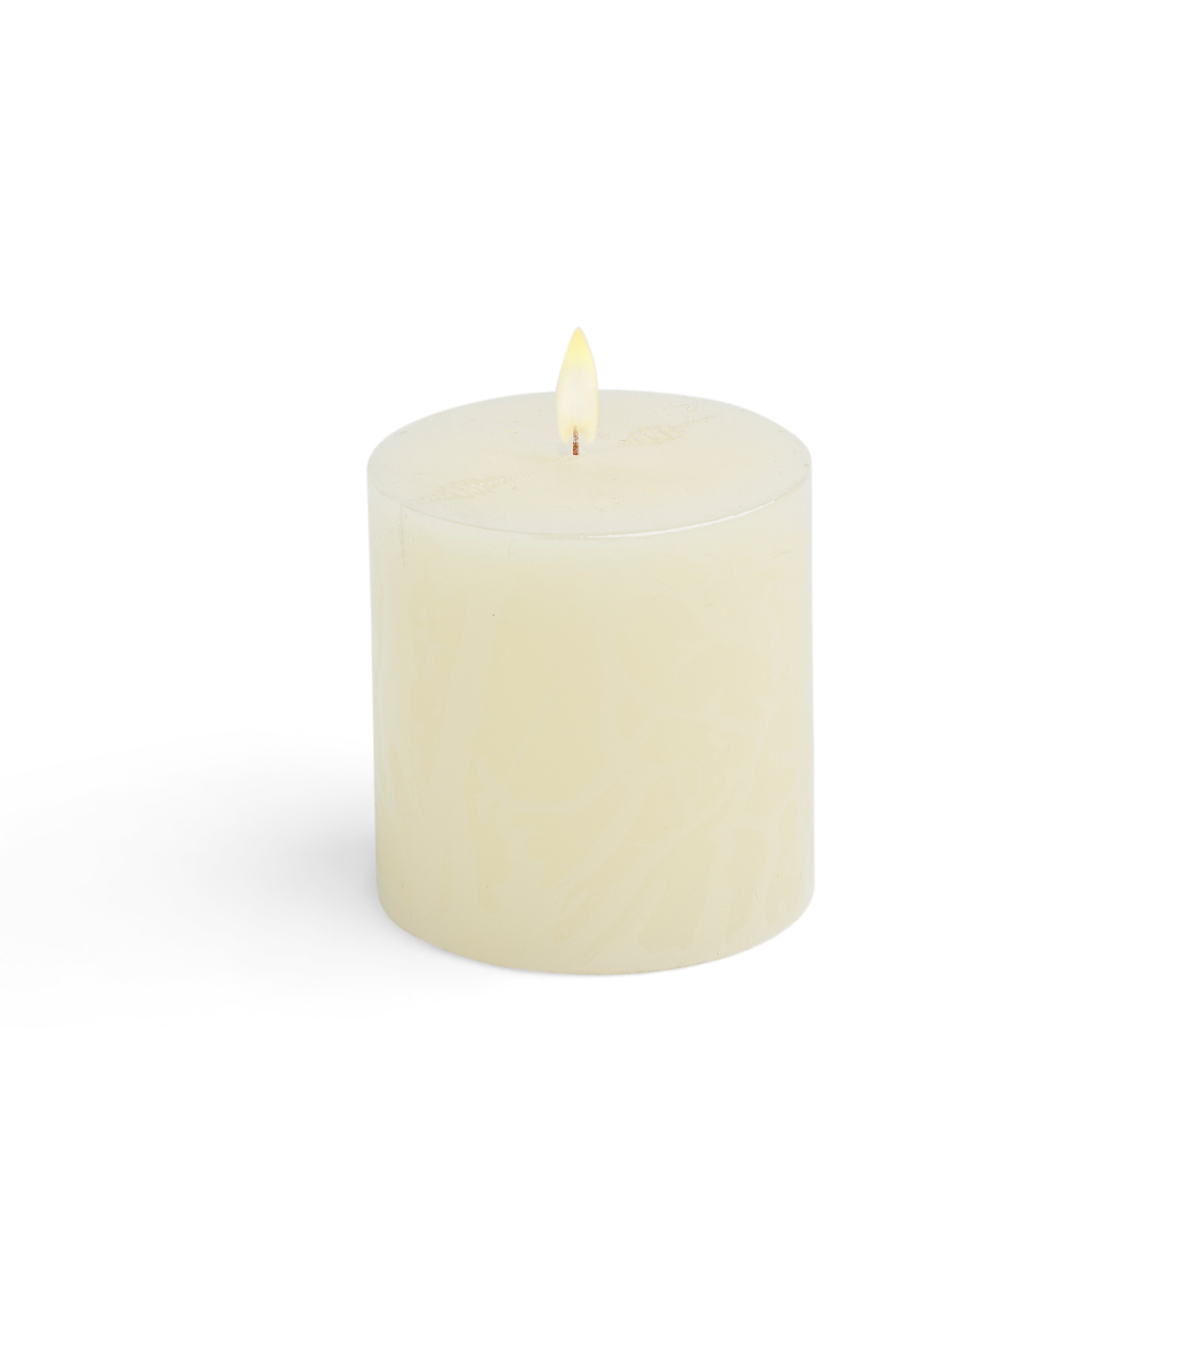 Hudson 43 Candle & Light Collection 3X3 Pillar Ivory